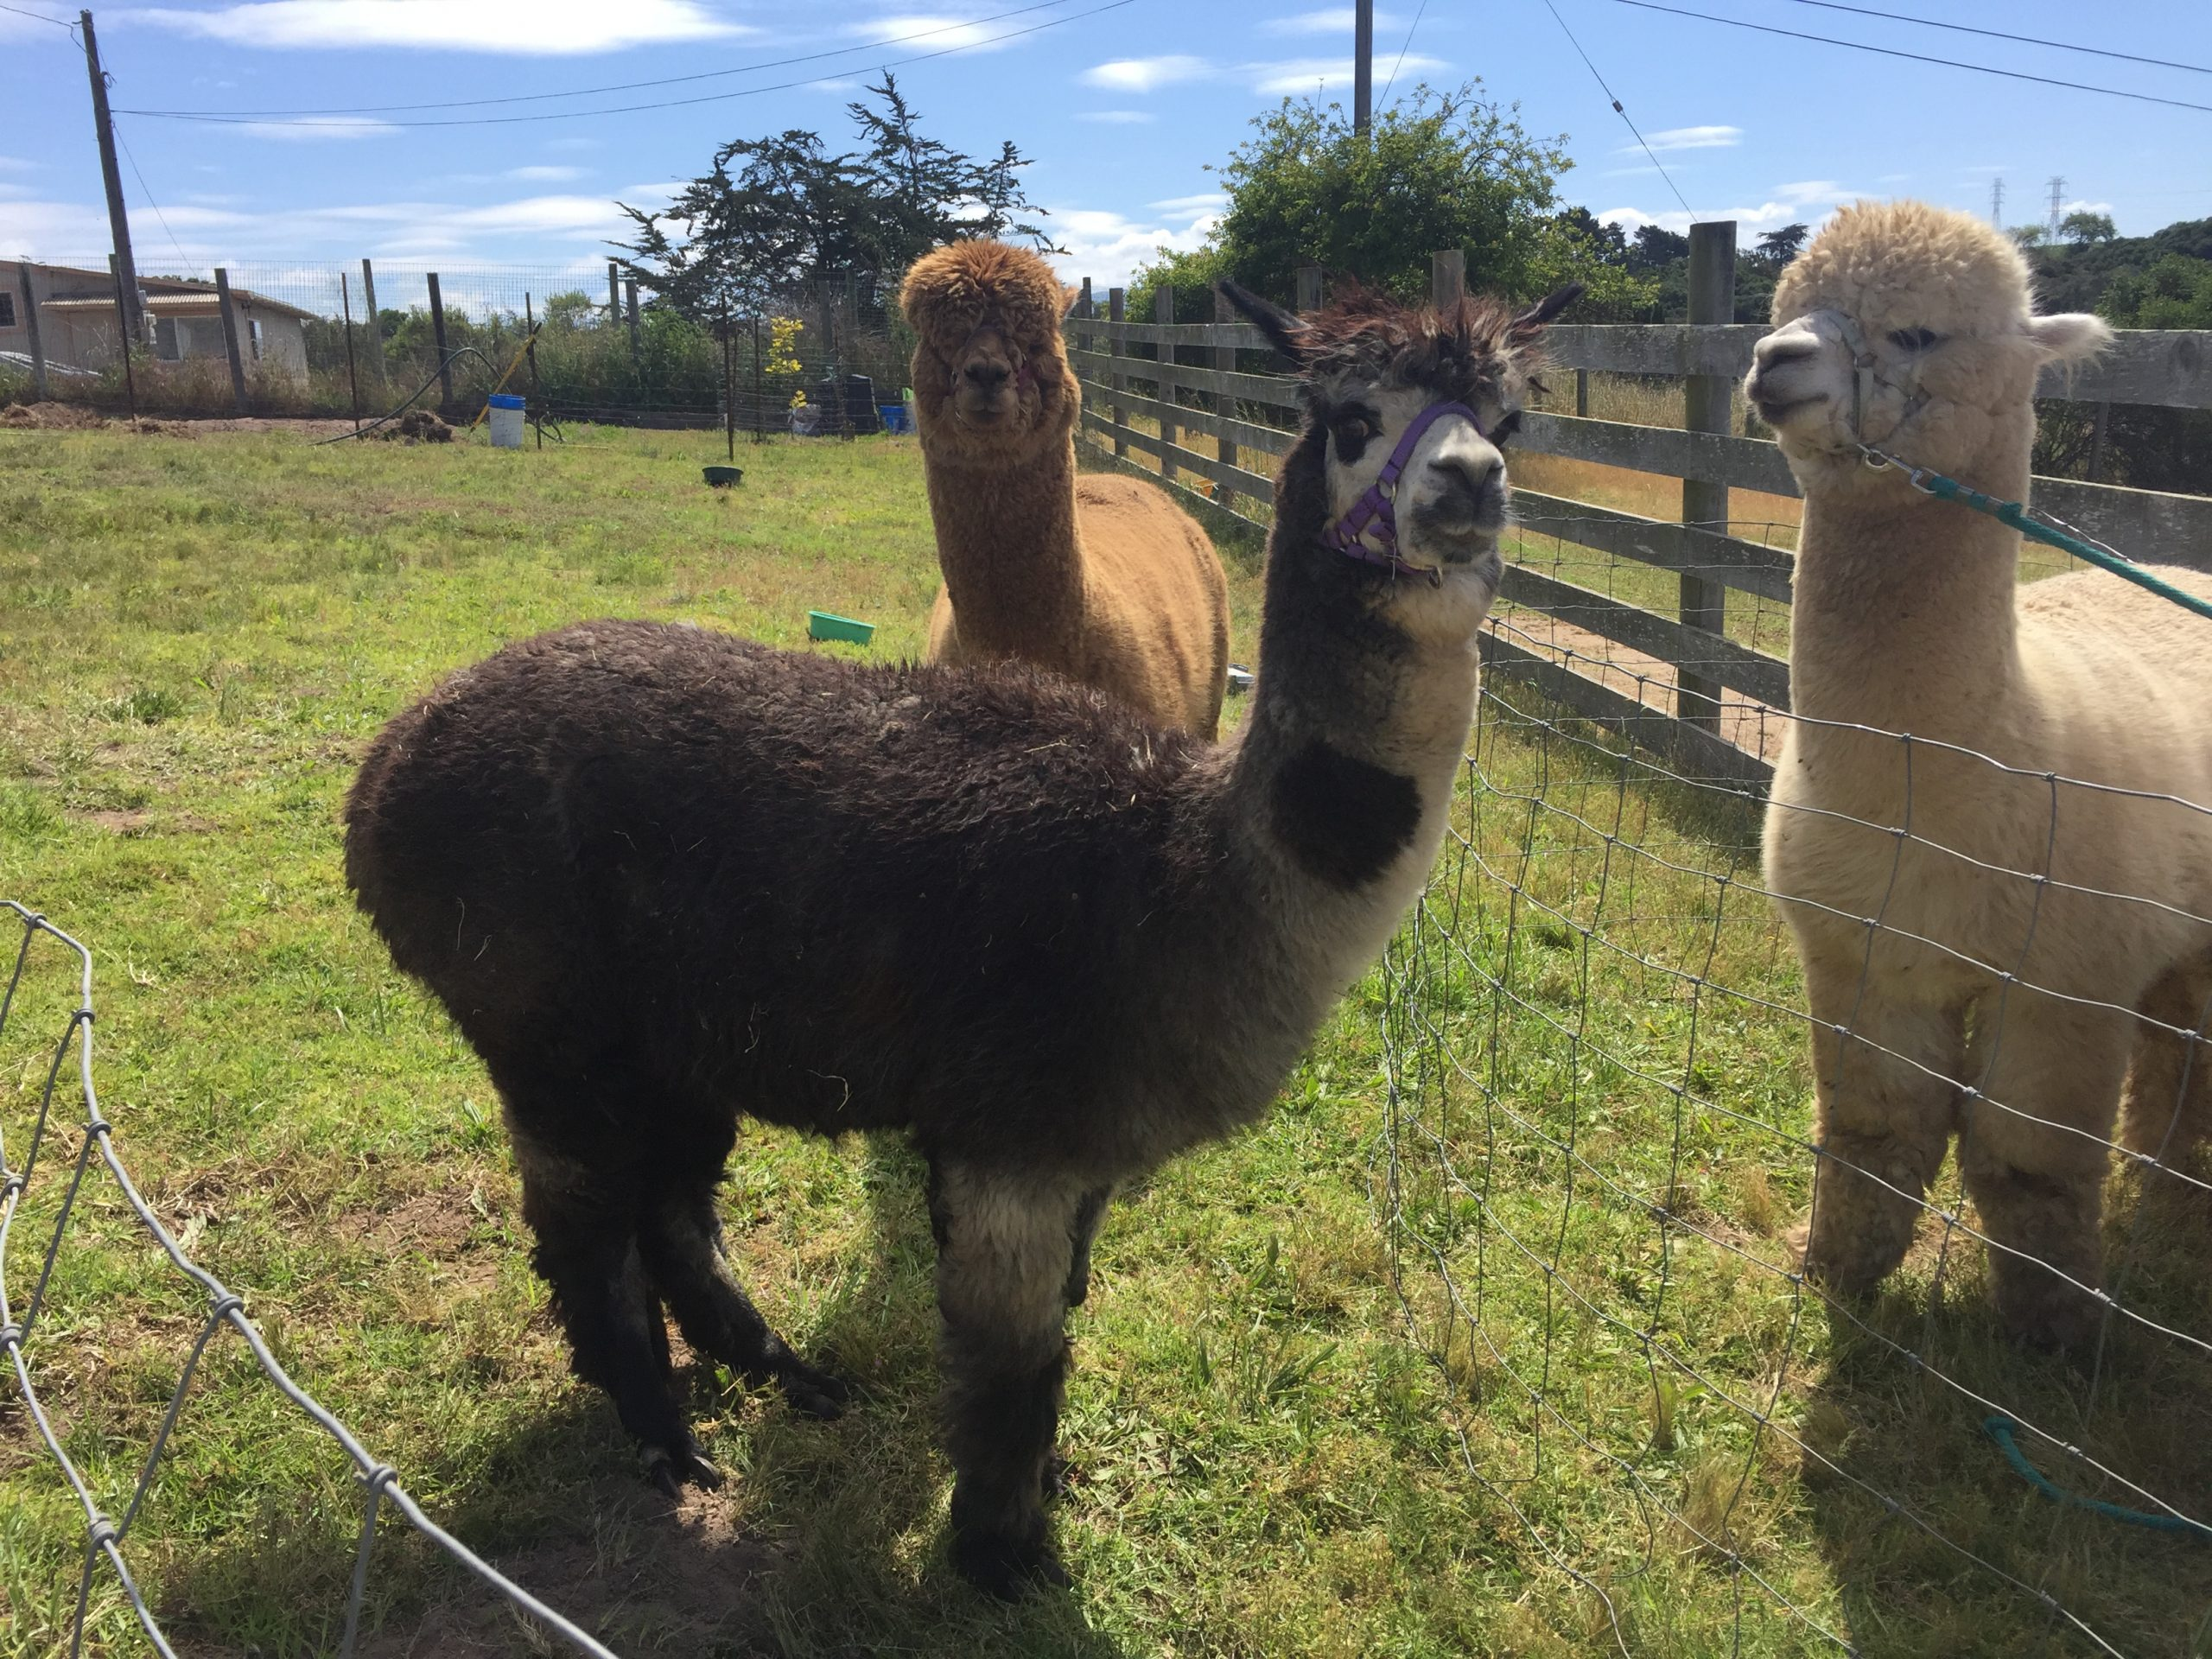 Shearing Day: time to lose the fur coat!